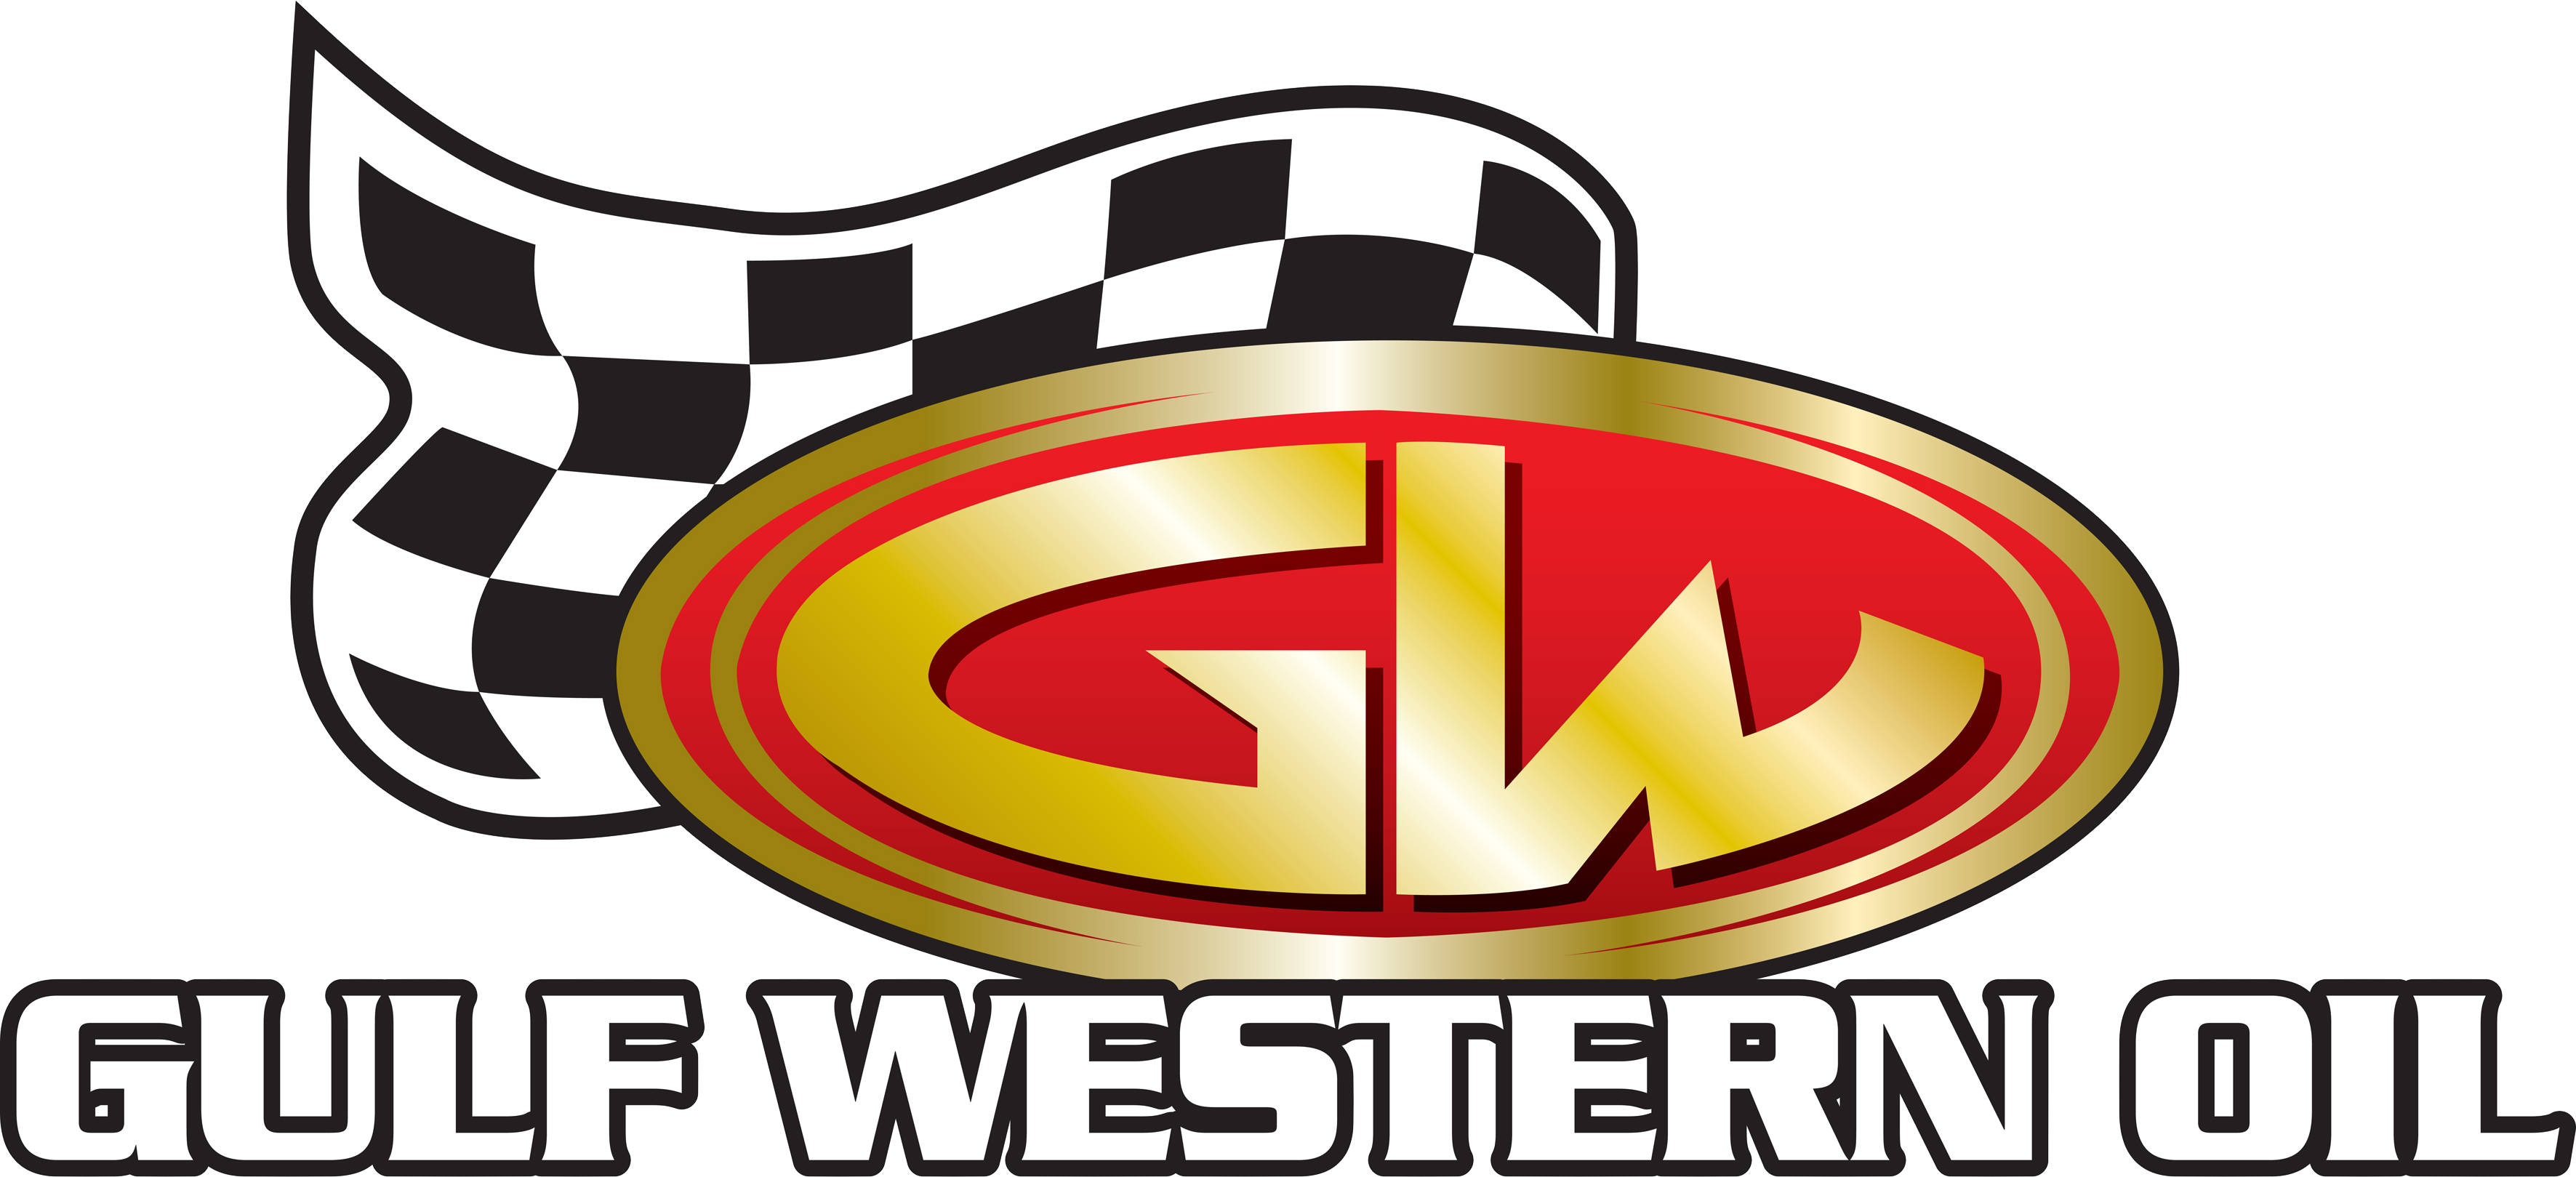 Gulf Western Recommended Oils & Lubricant for your Vehicle